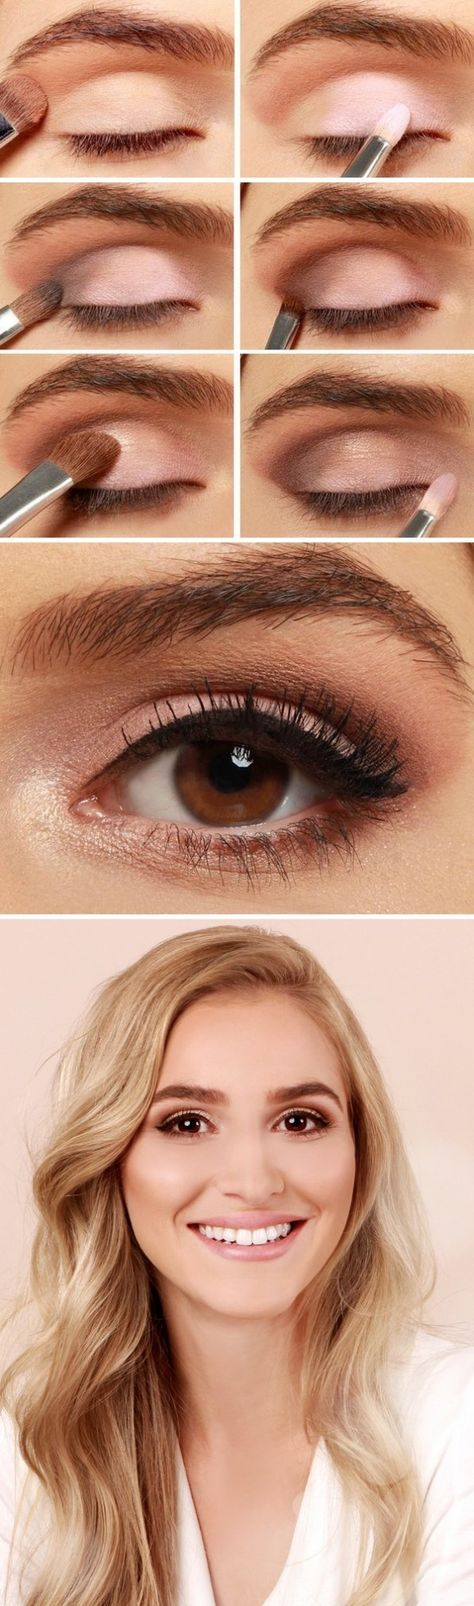 Eye Makeup Tutorial.. http://www.caring.in.net/eye-makeup-tutorial-can-be-change-your-overall-look.html ..Hey ladies with brown Eye Makeup Tutorial, this post is only for you top 10 Eye Makeup Tutorial for natural Eye Makeup Tutorial mac ... #EyeShadow #EyeColor #EyeMakeup